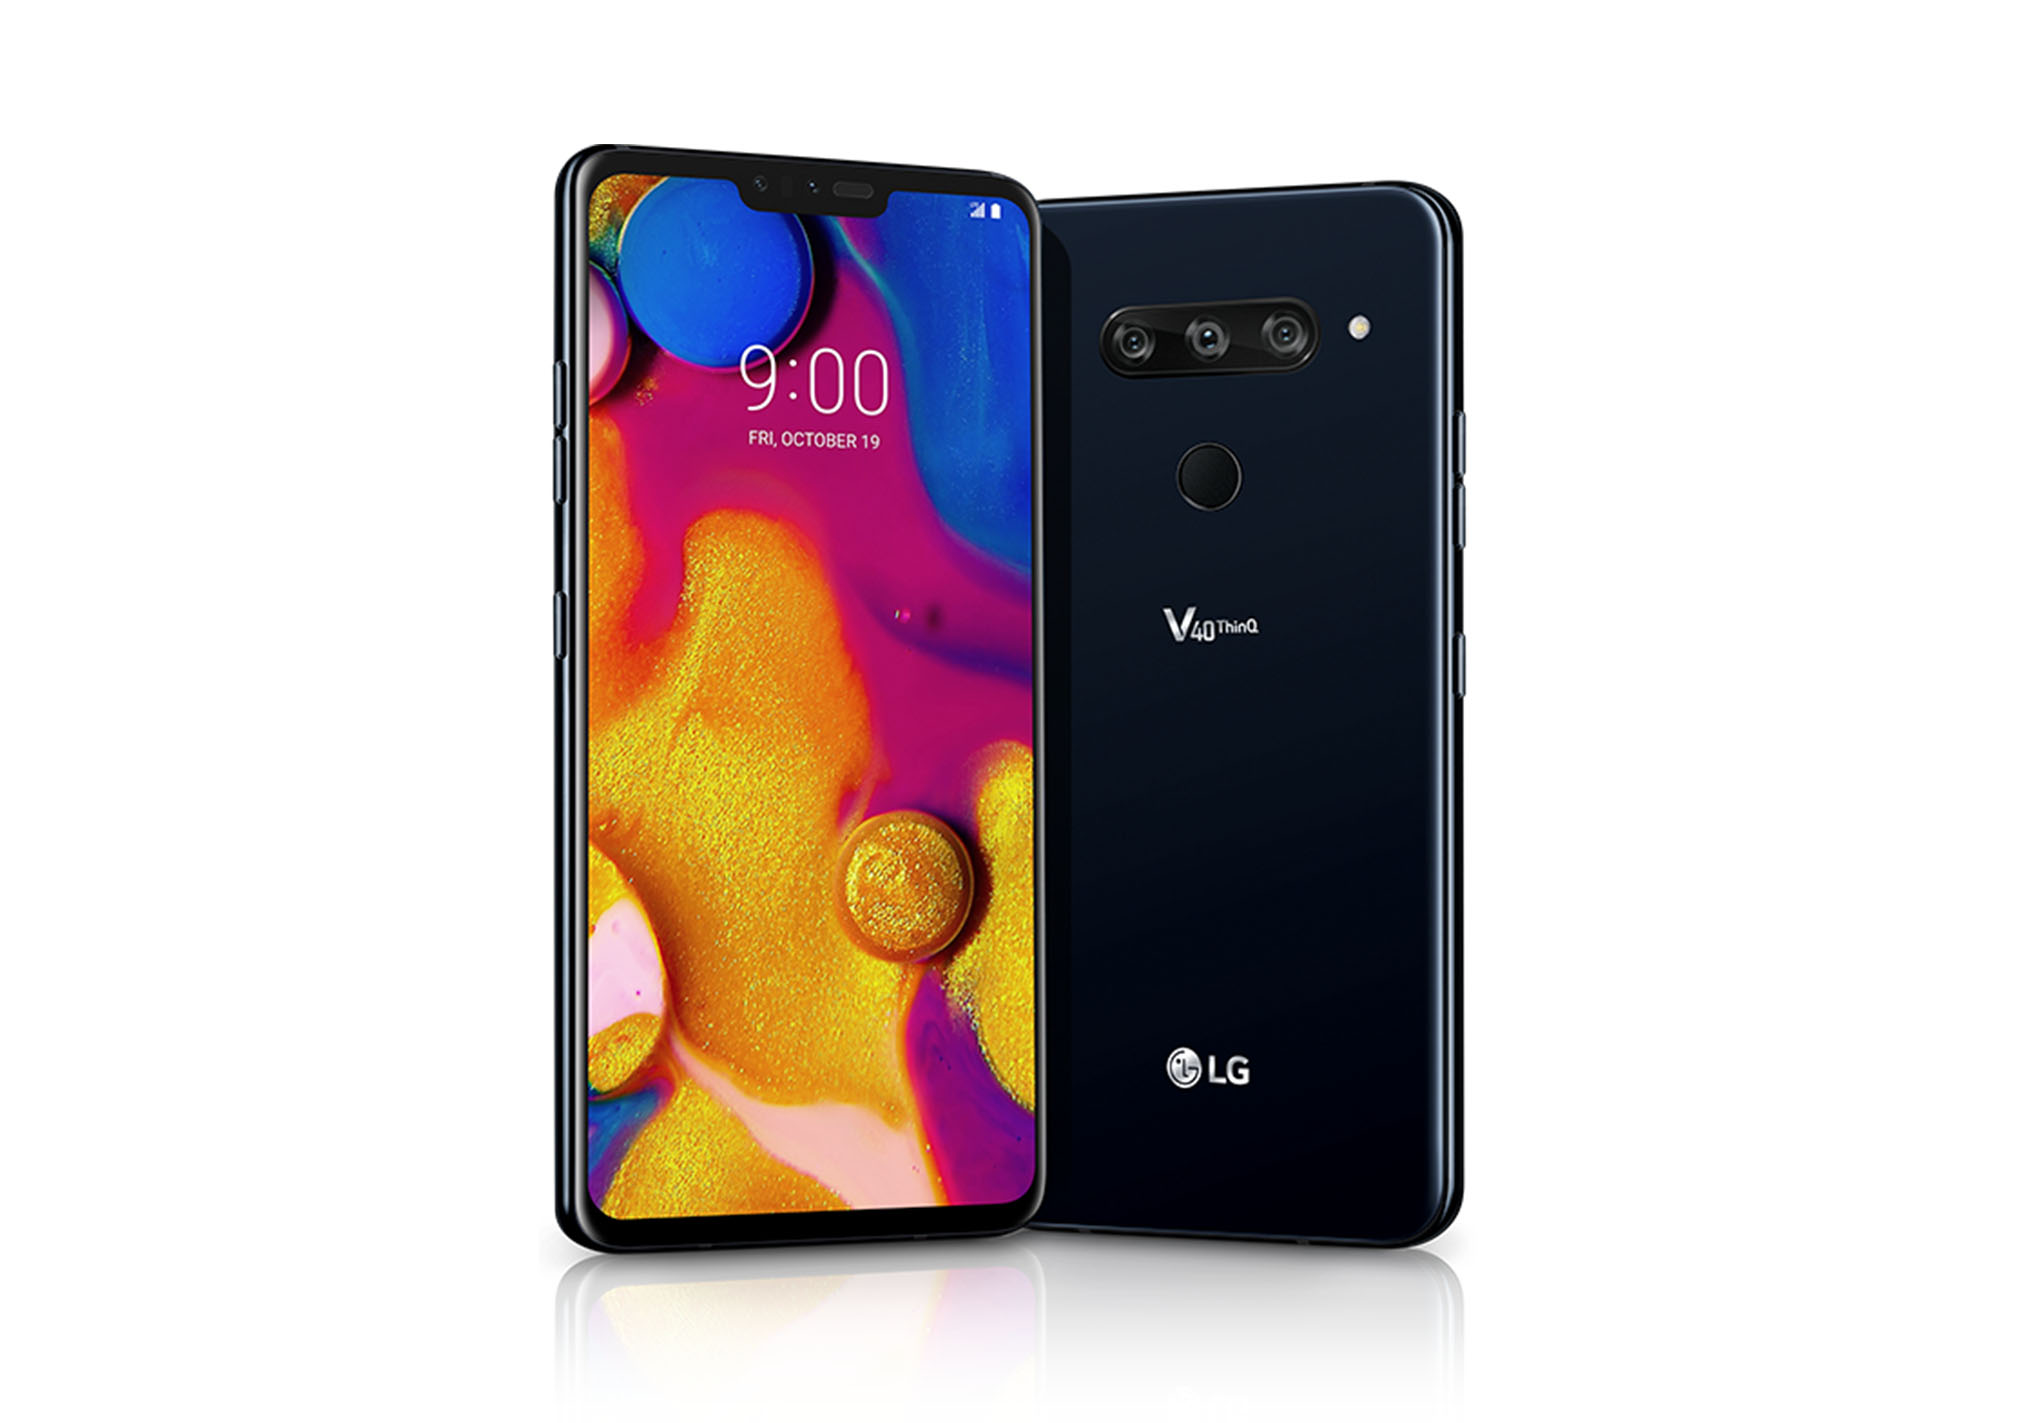 The LG V40 ThinQ is the first smartphone with wide, standard, and